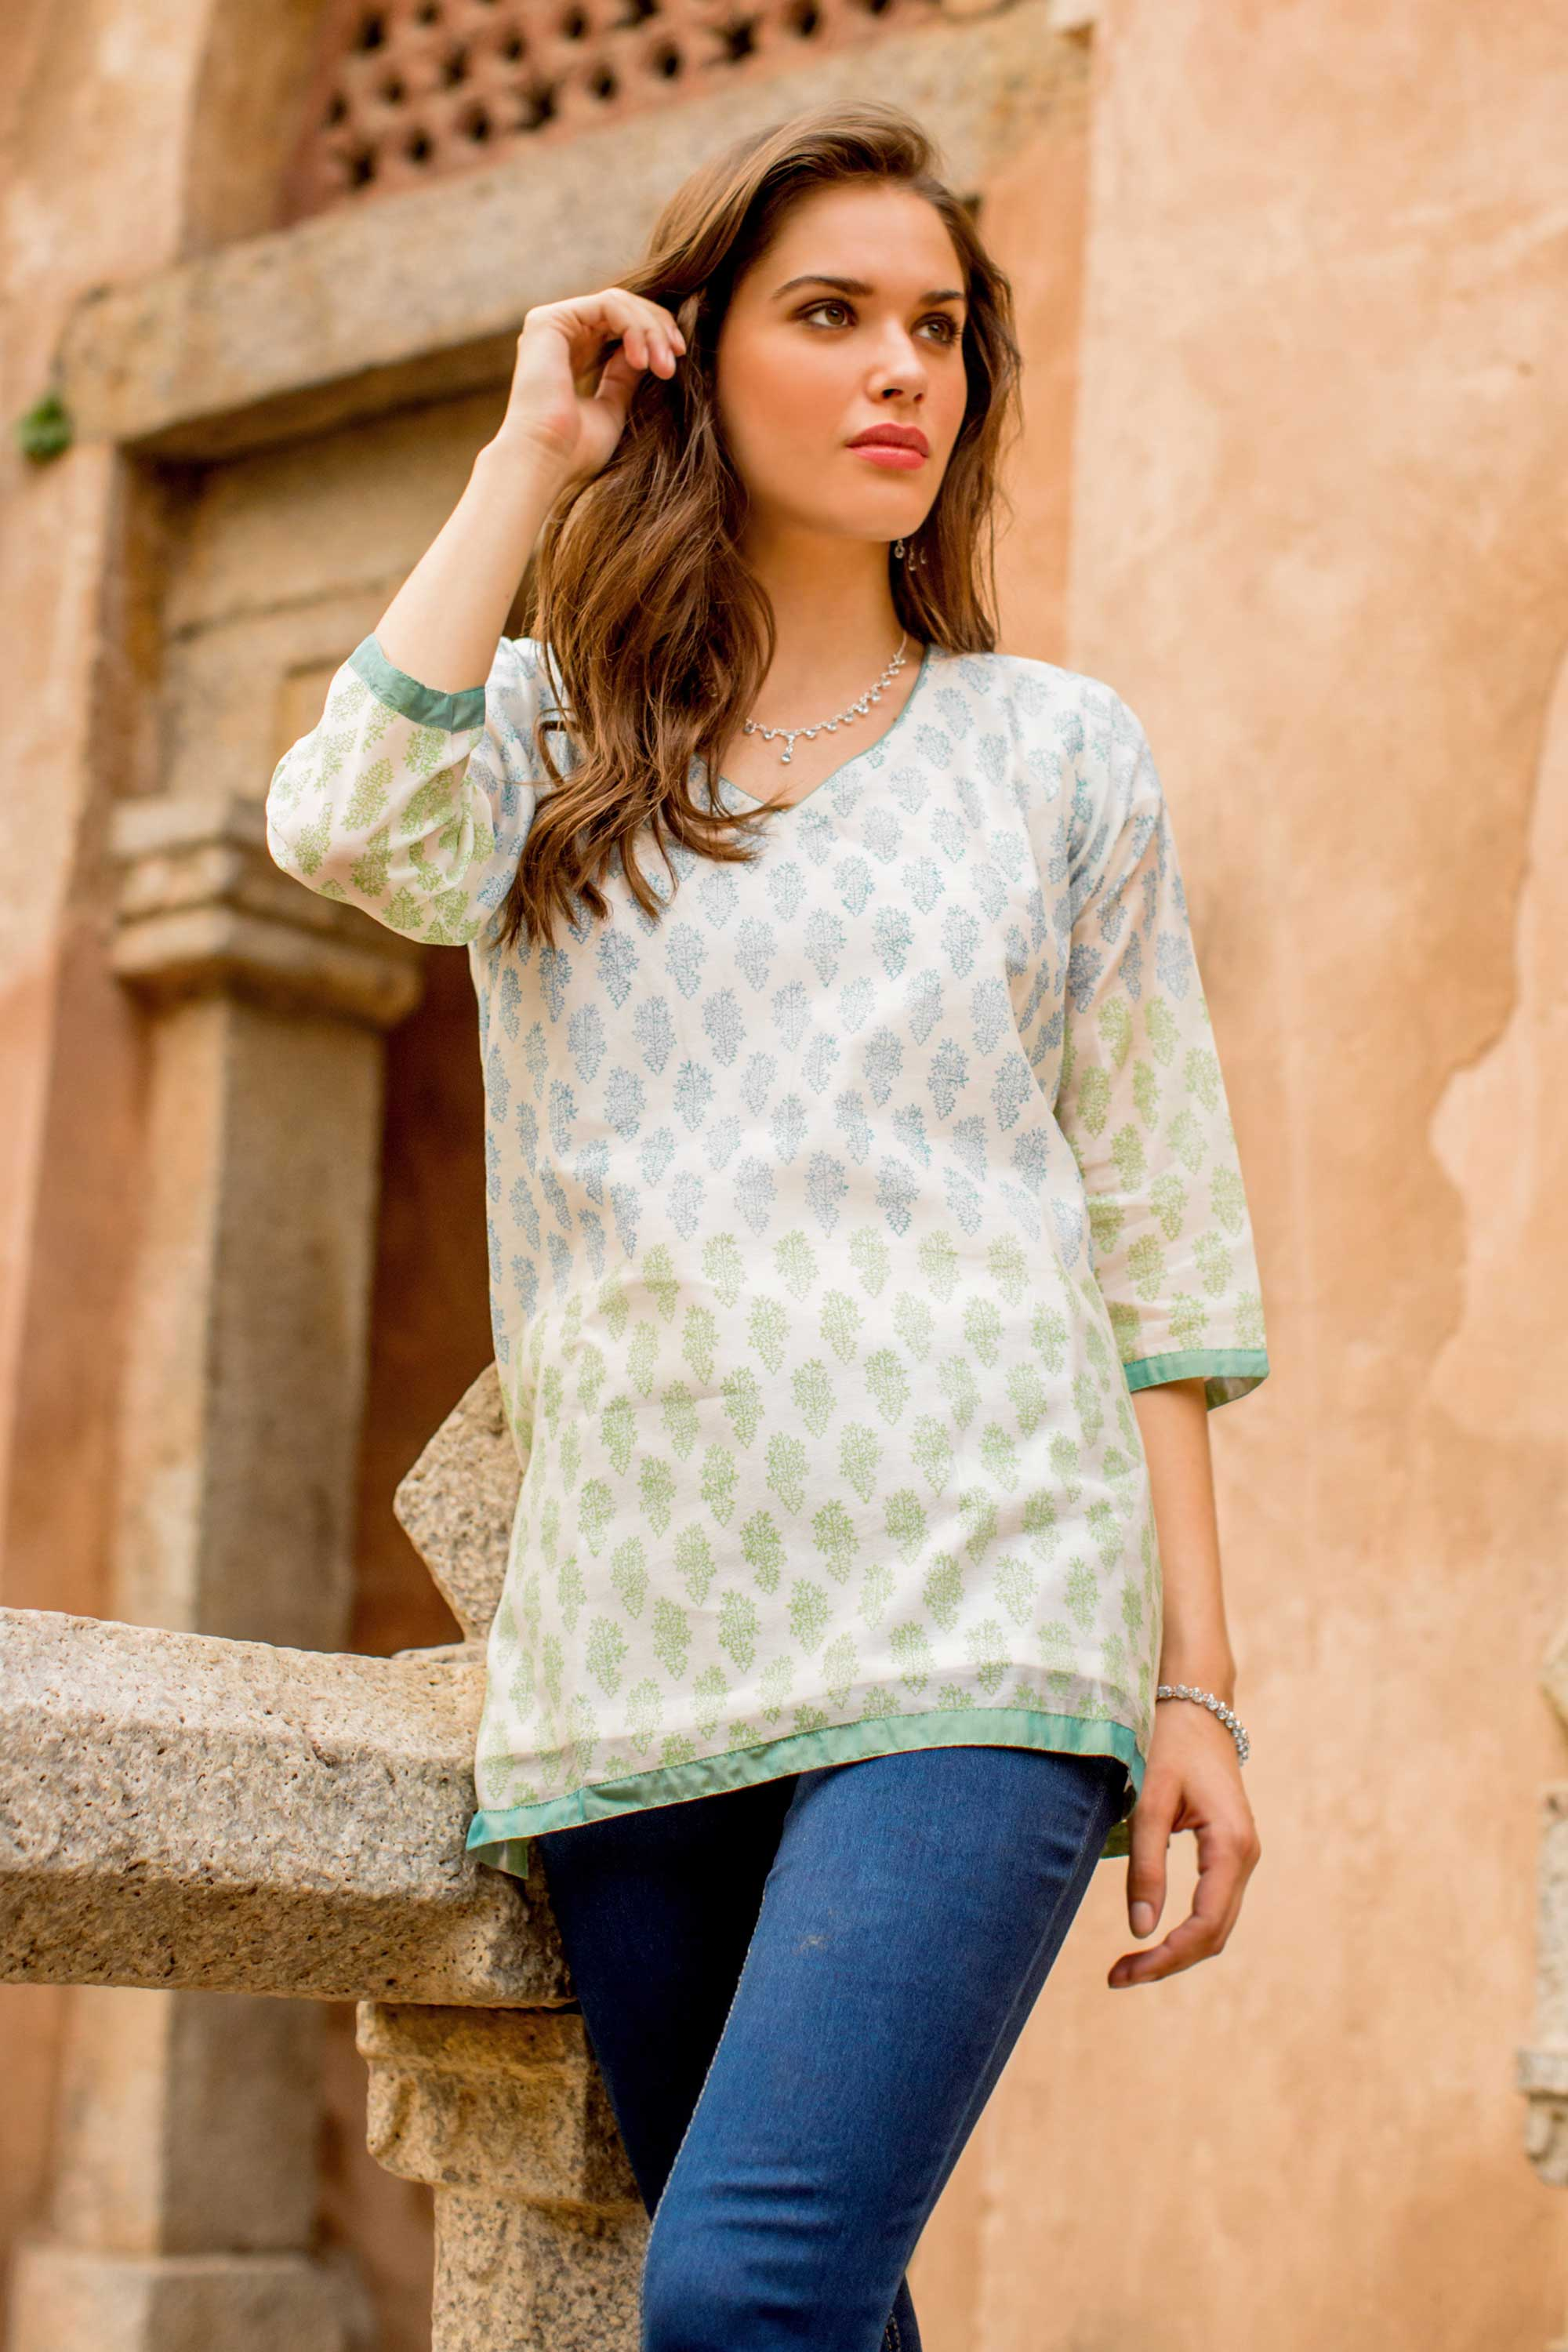 b09dd21435953c Handmade Block Print Lined Cotton Blend Tunic from India,